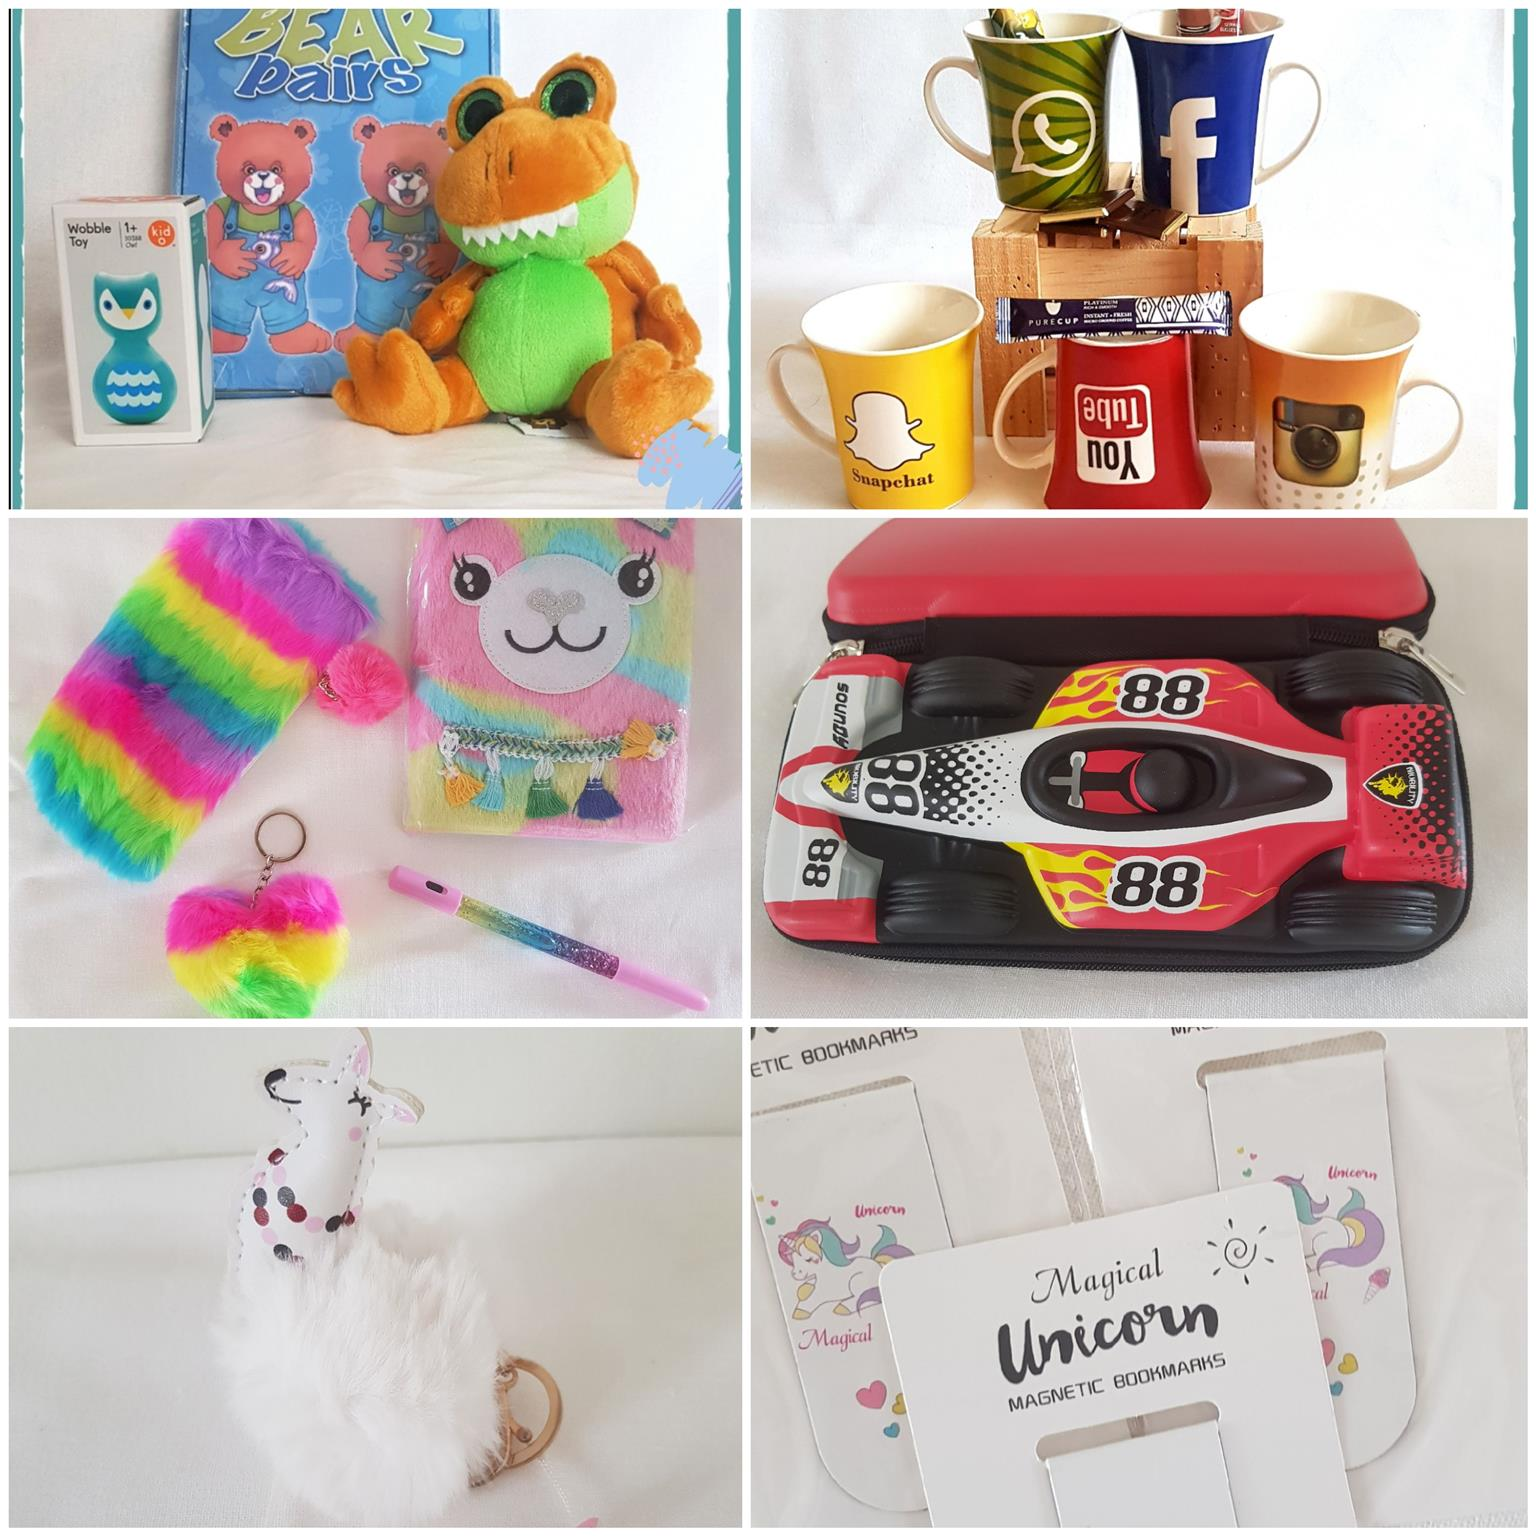 Educational products, novelty, stationery